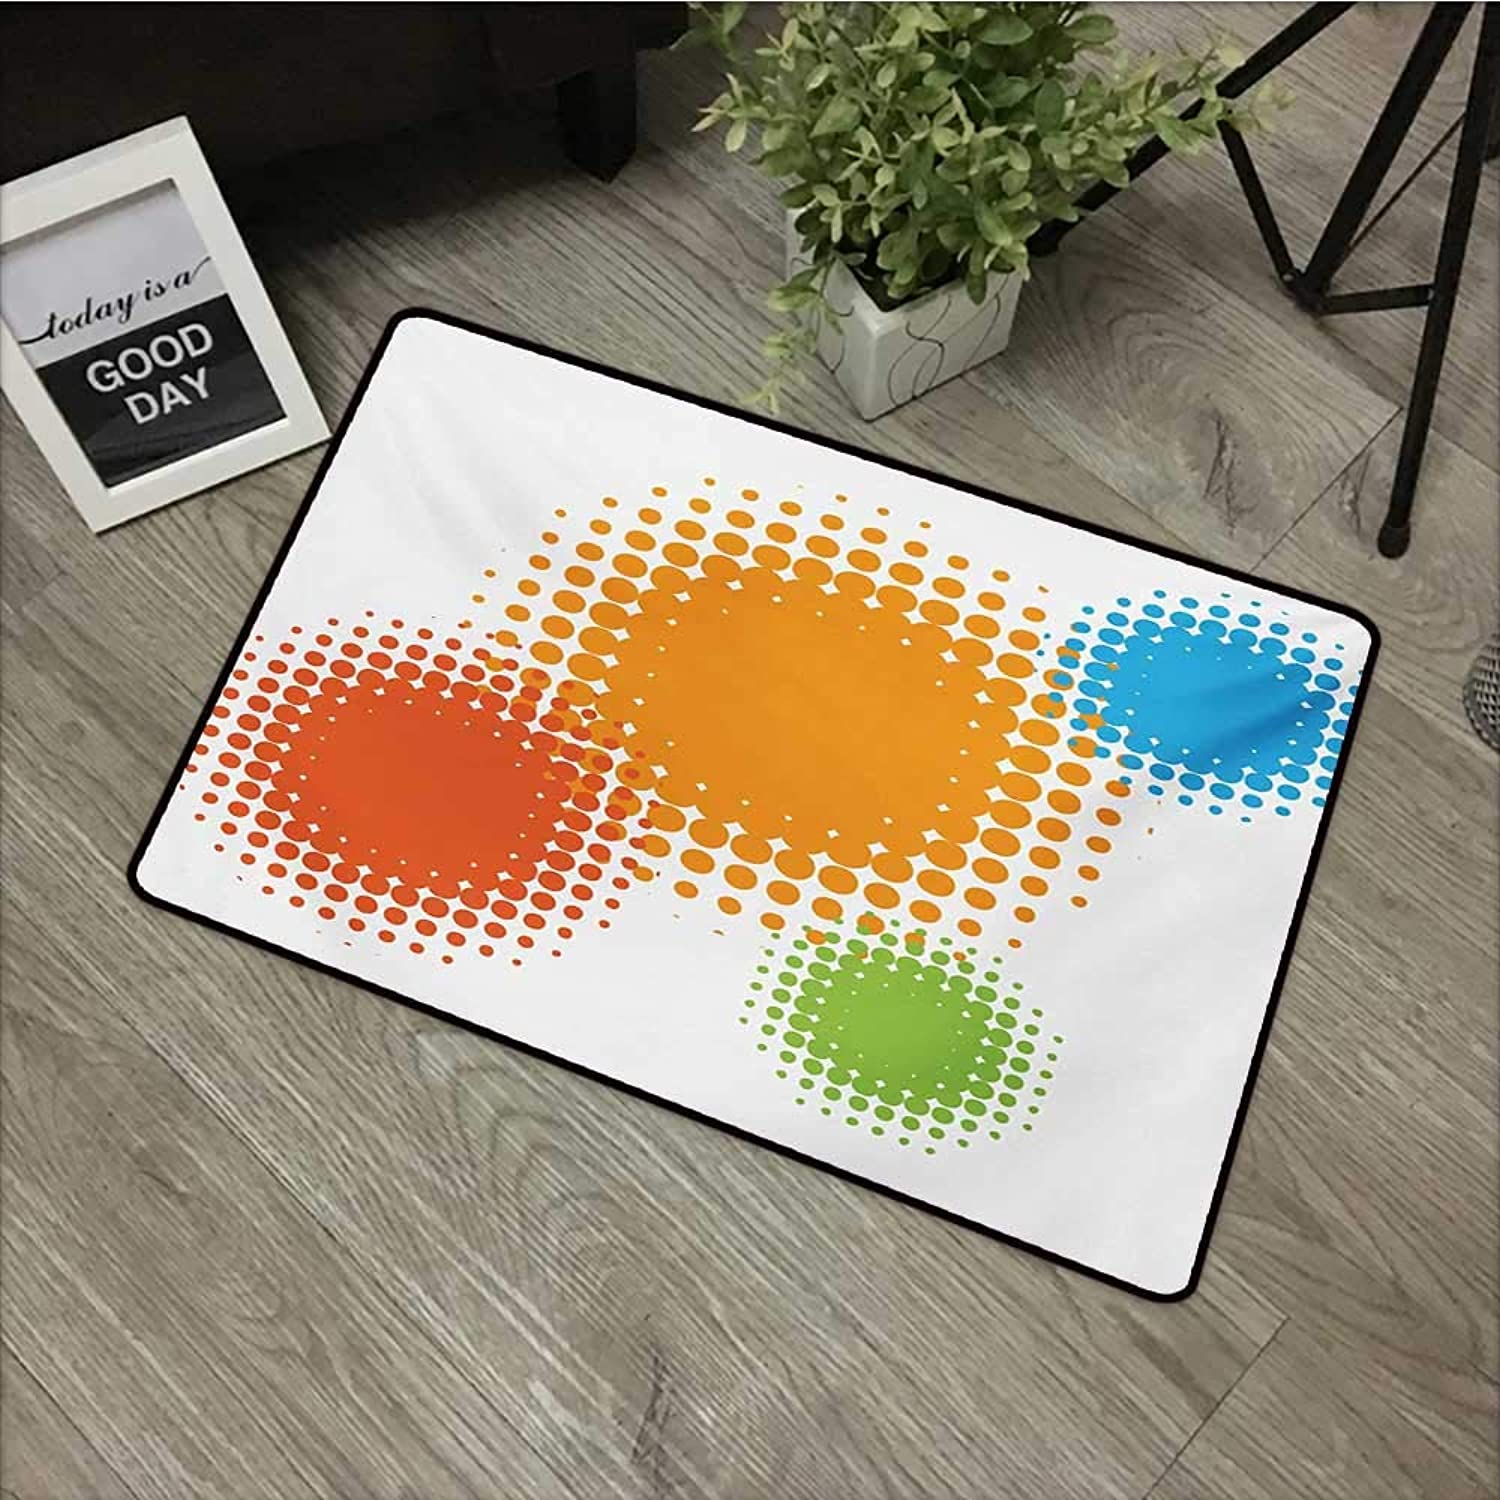 Bathroom Door mat W35 x L47 INCH orange,colorful Half Tone Circles with Spots on White Background Retro Design,Red orange and bluee Easy to Clean, no Deformation, no Fading Non-Slip Door Mat Carpet